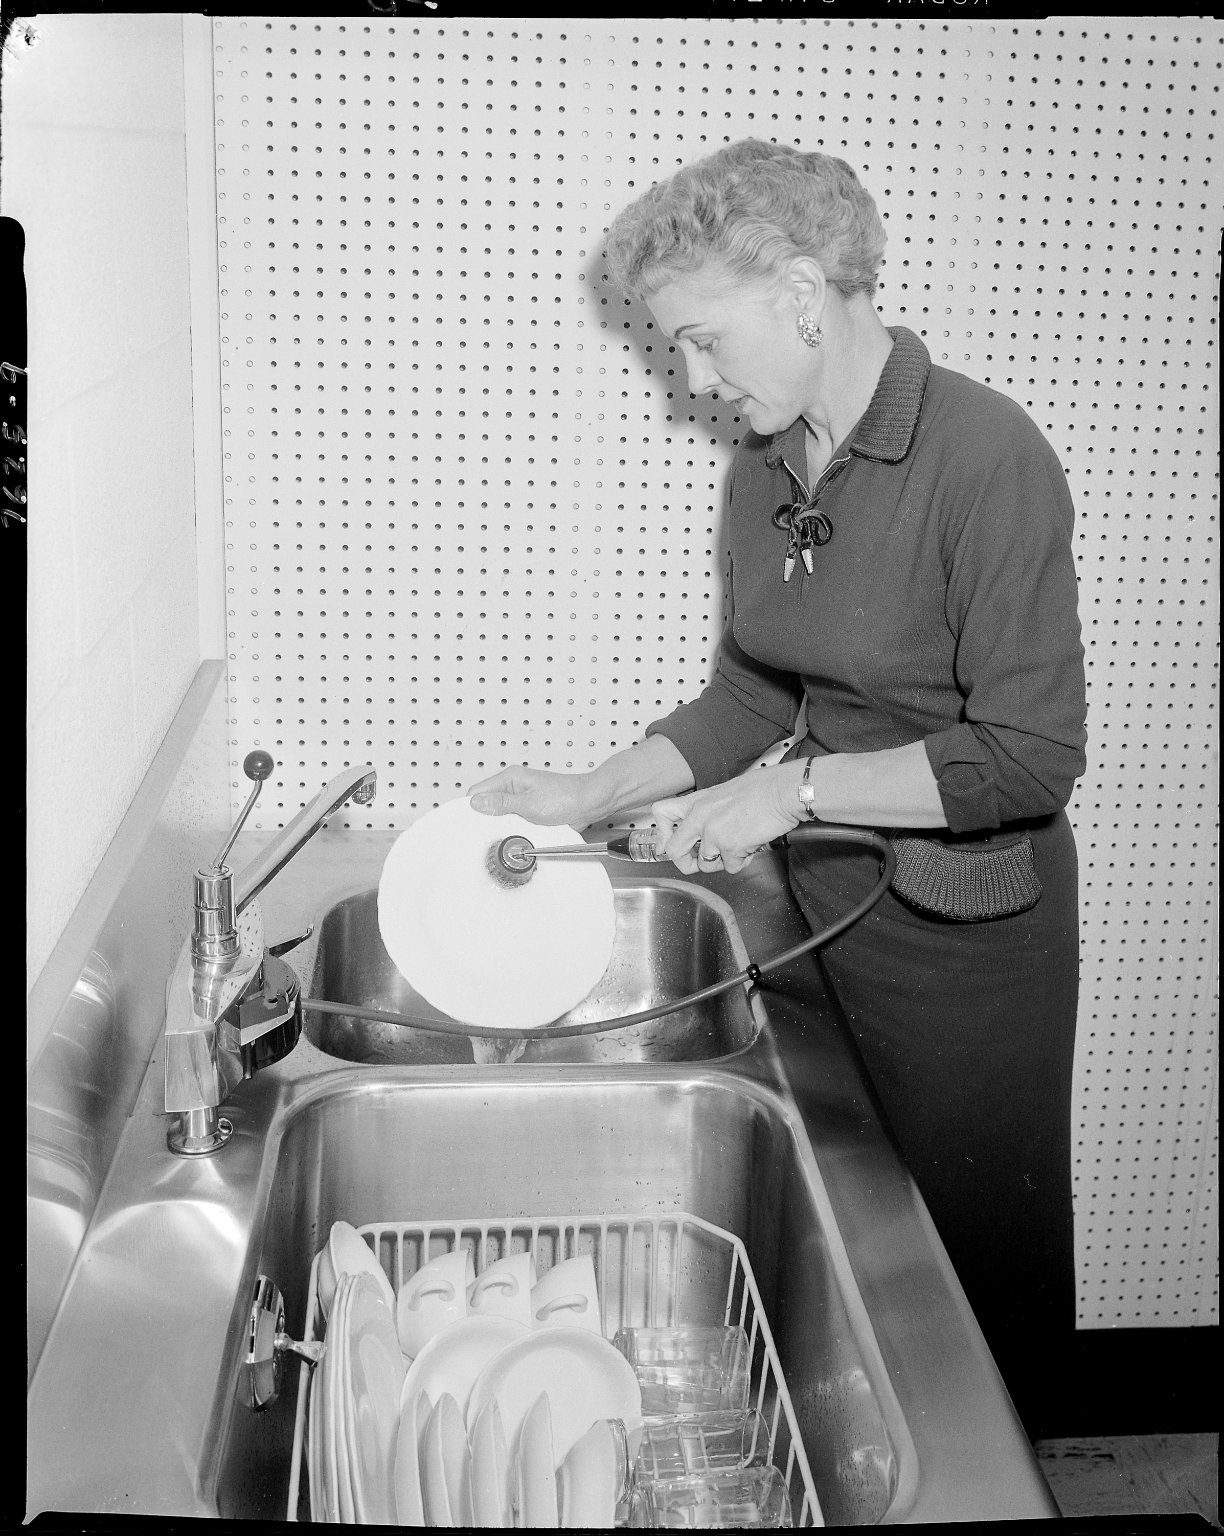 Ruud Manufacturing Company, in-sink dishwasher being demonstrated by model